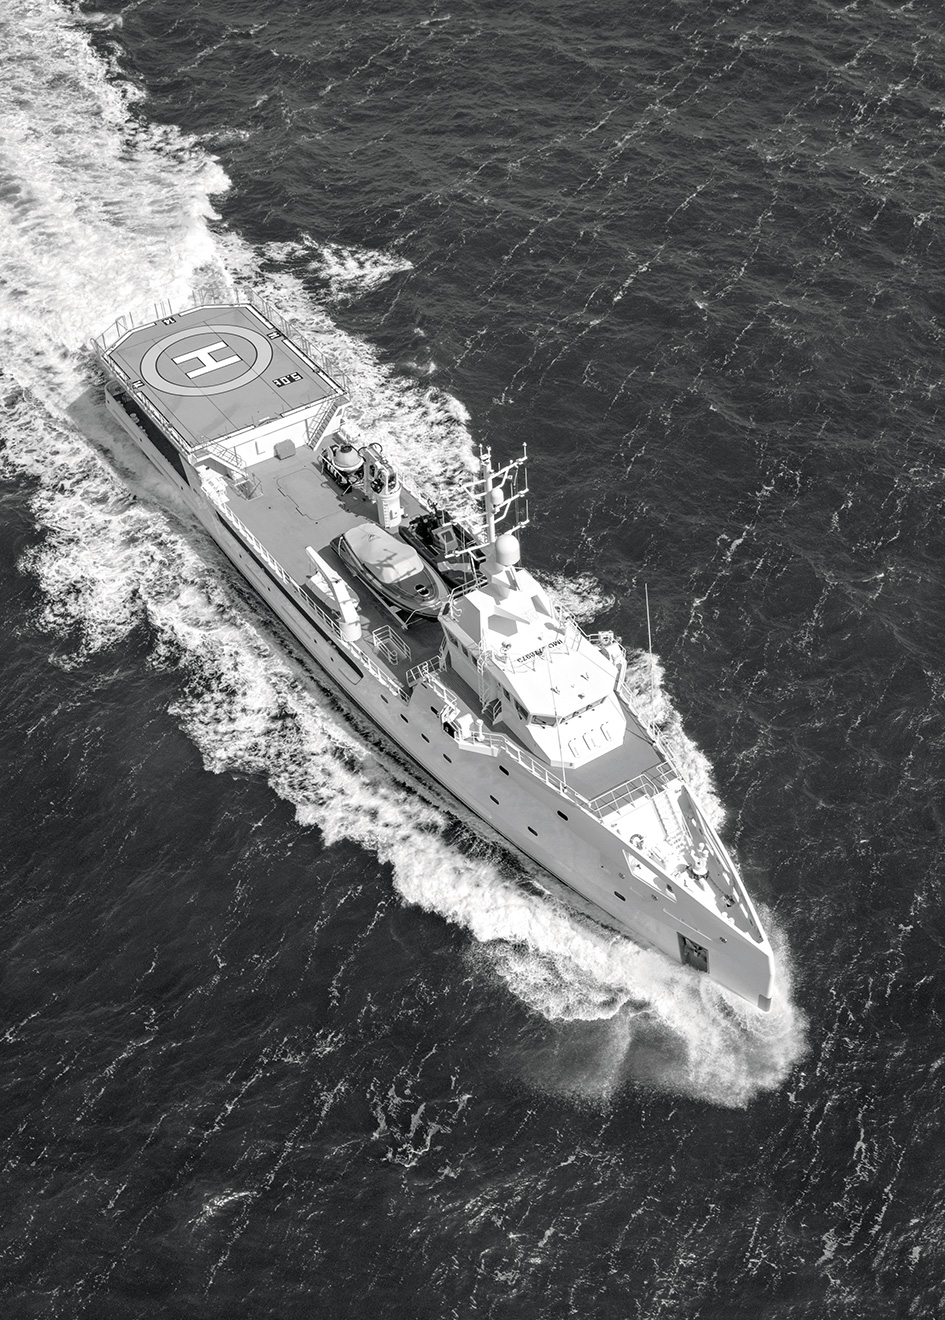 aerial-shot-of-the-damen-superyacht-support-vessel-game-changer